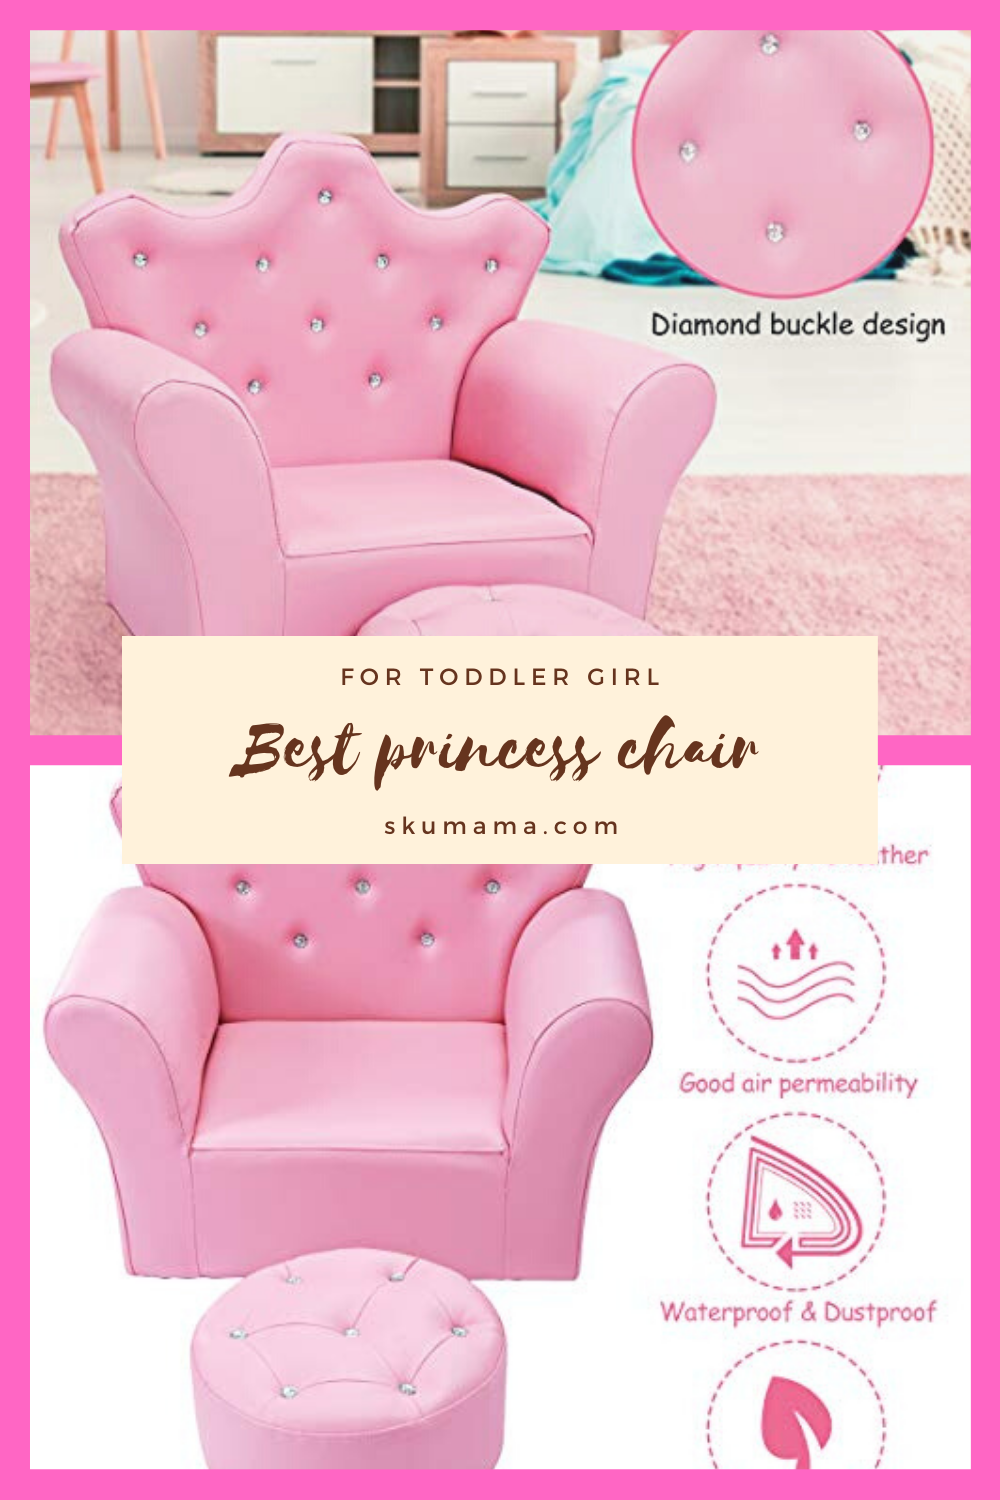 I Ve Tested And Reviewed Over 20 Toddler Chairs To Choose The Best These Rankings Are The Culmination Of My Efforts In 2020 Toddler Chair Toddler Girl Toddler